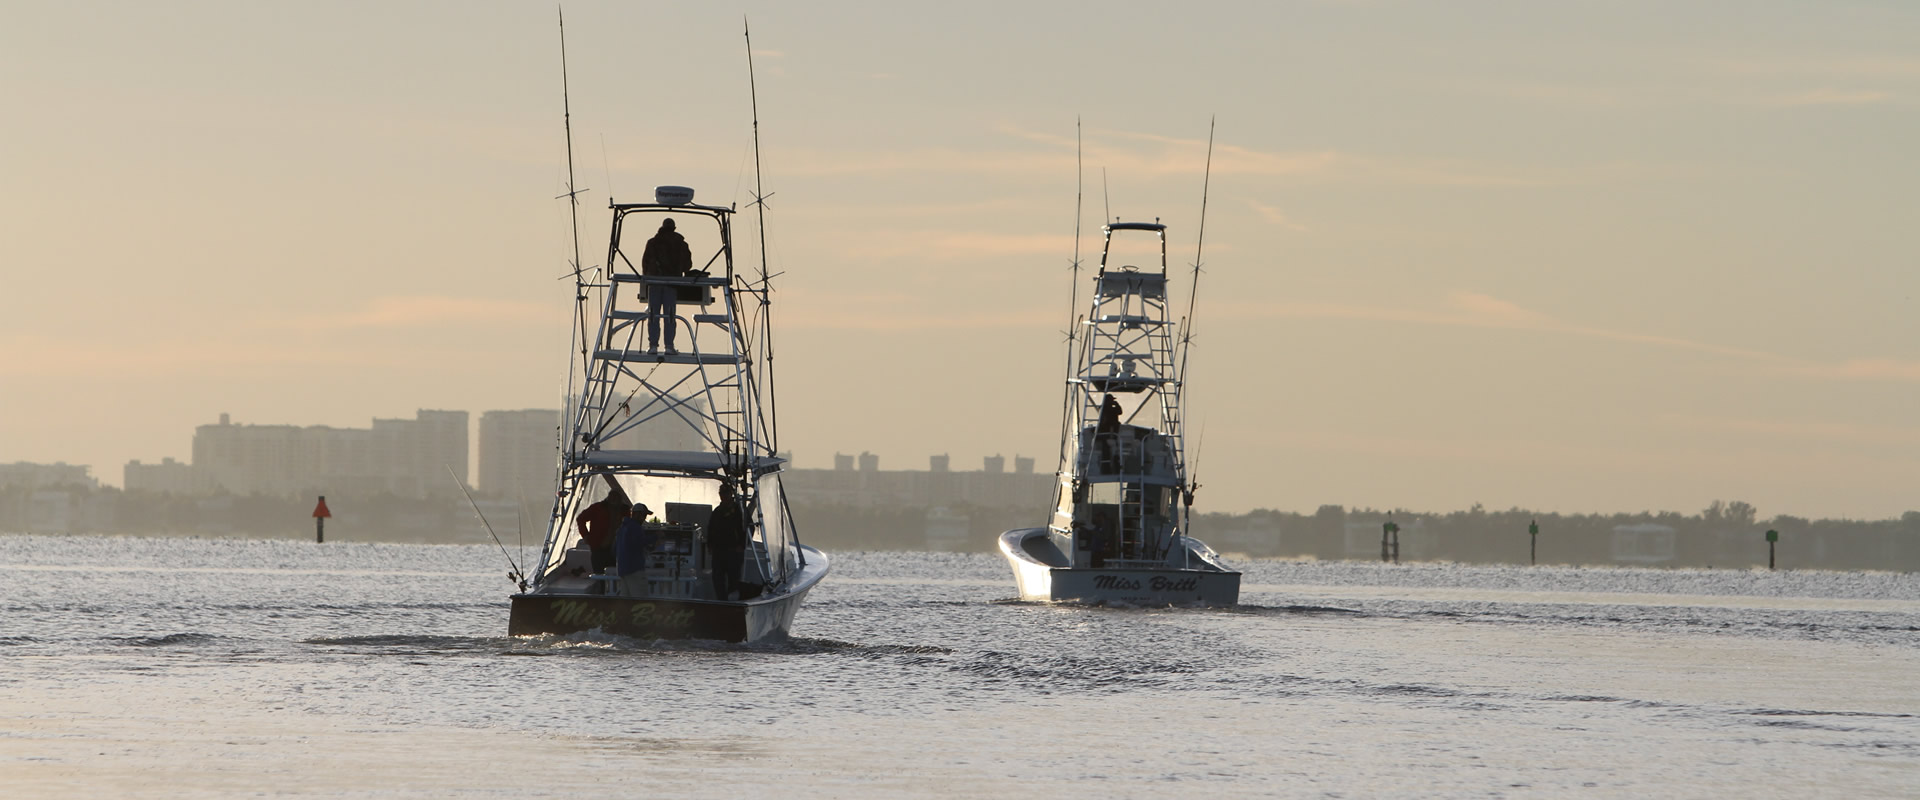 Full Day Fishing Charters